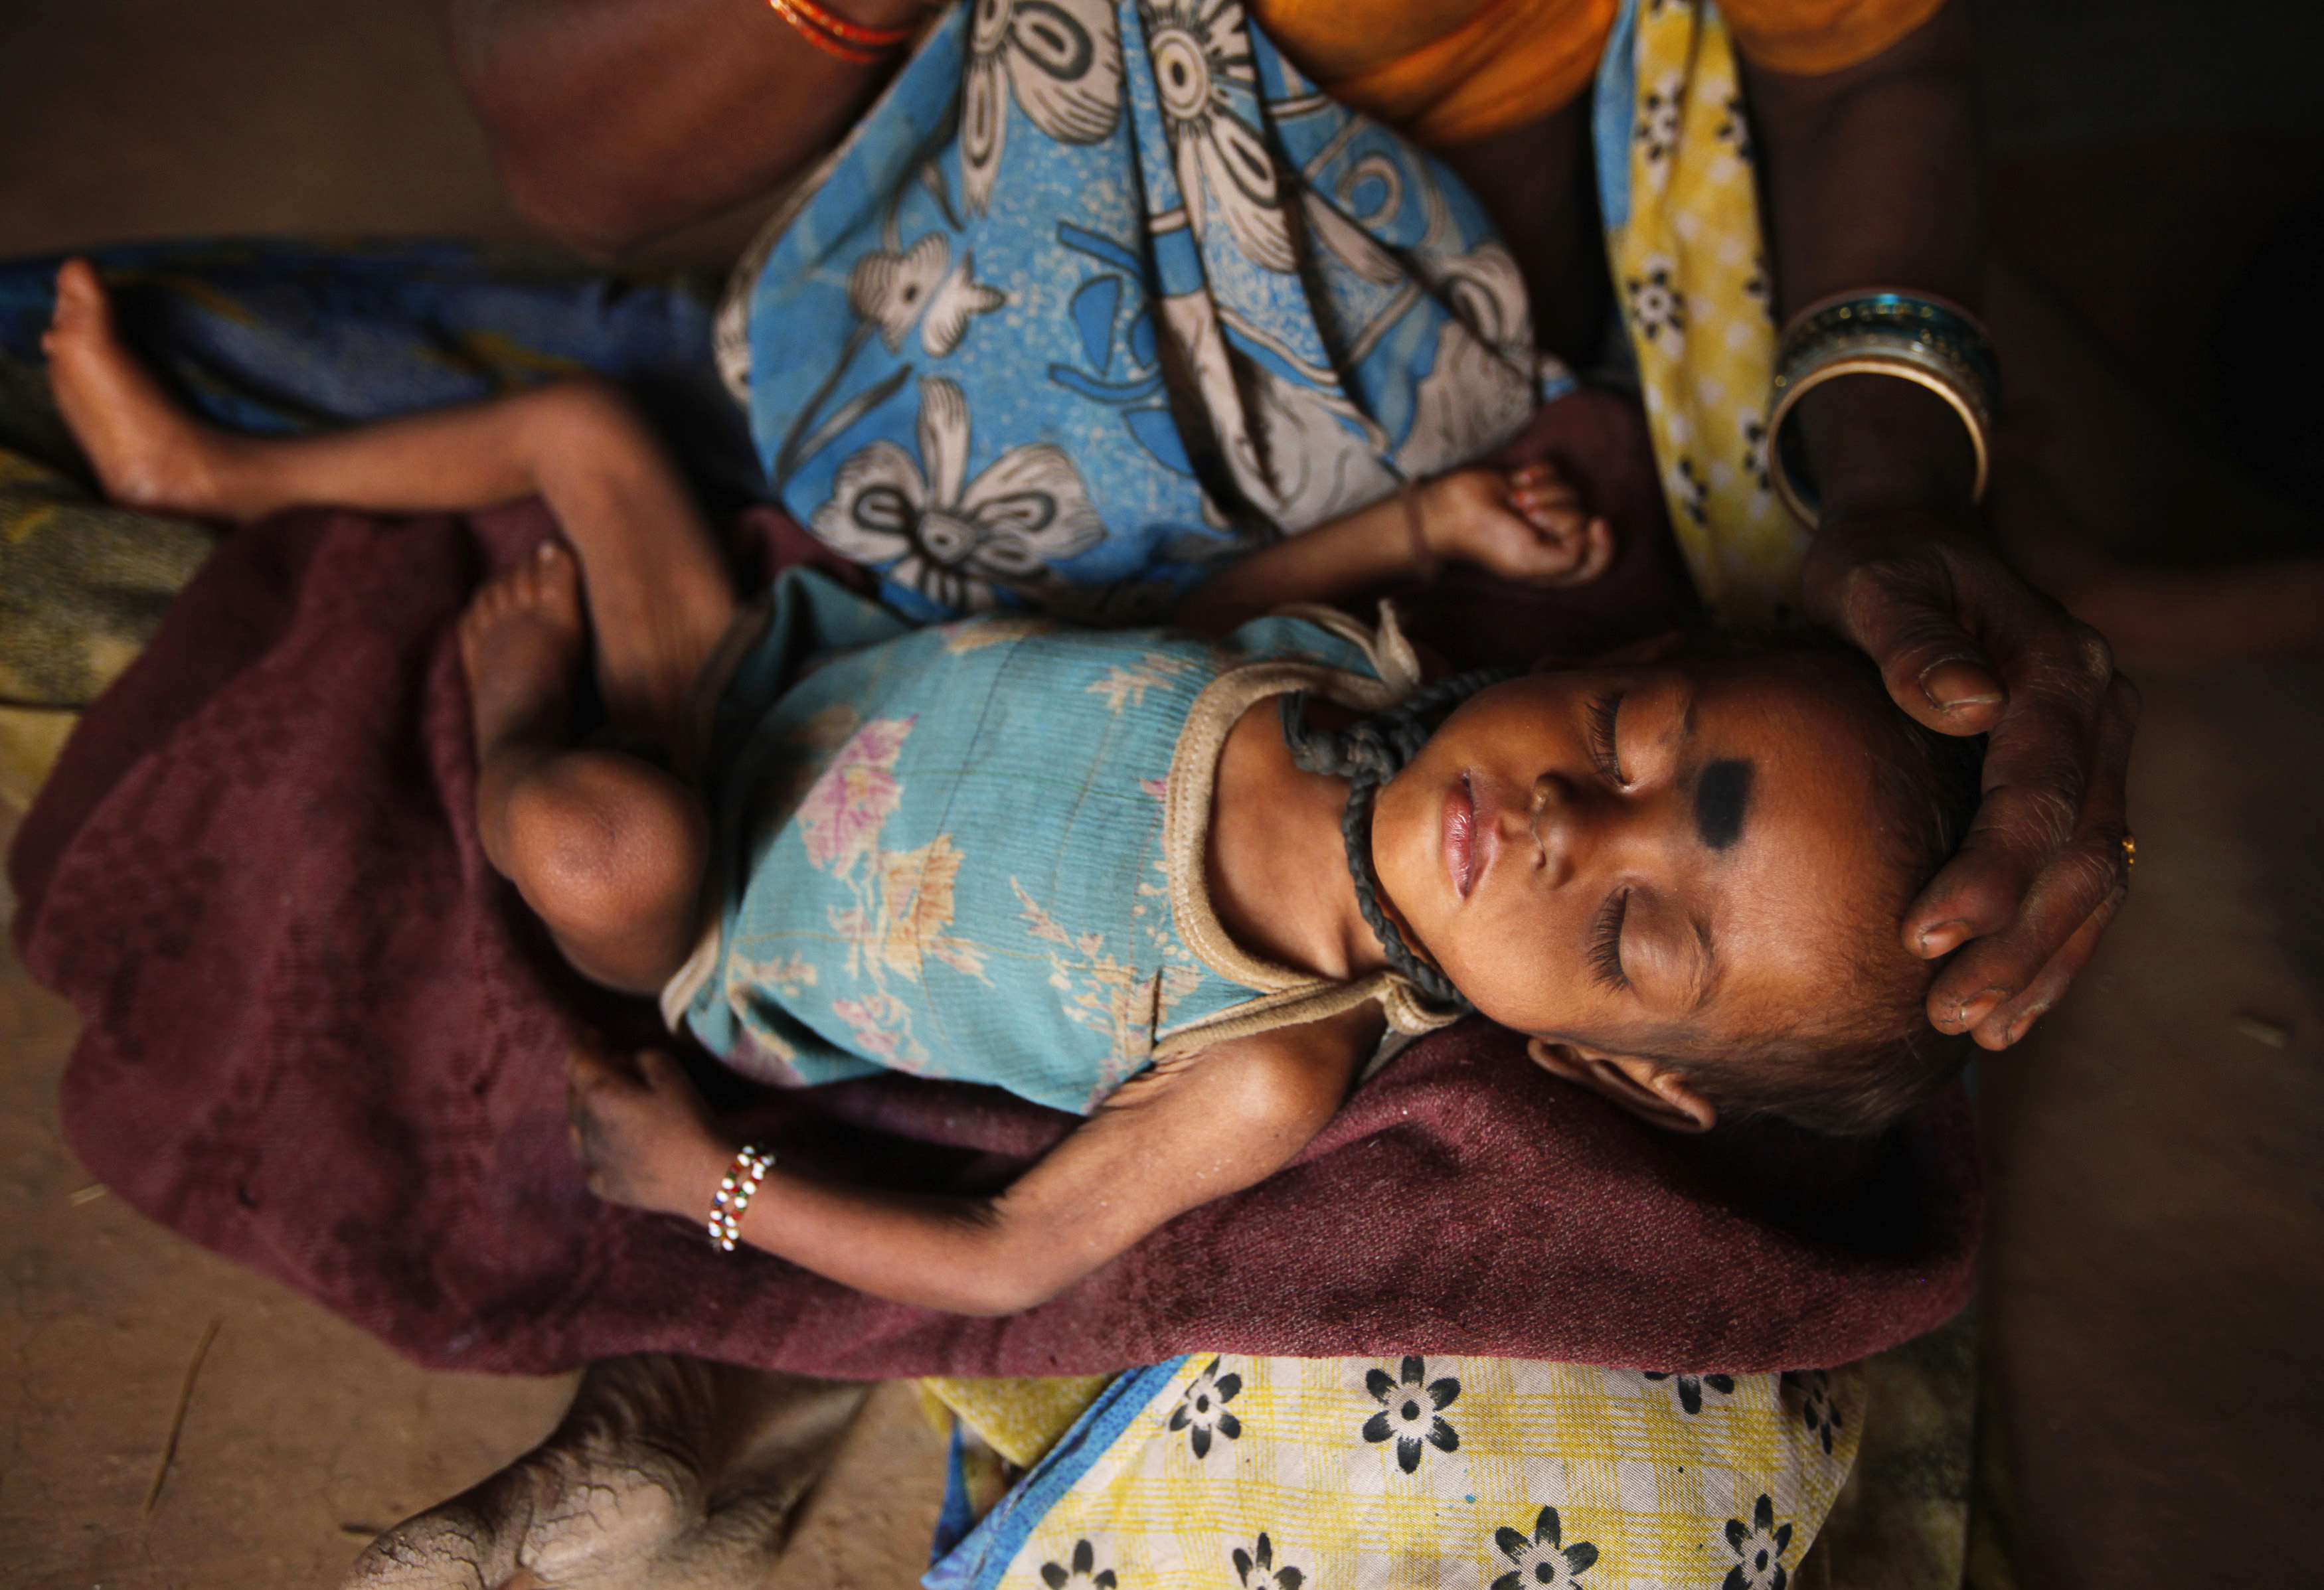 Around 44% of children under the age of 5 are underweight in India. (Image: Reuters)